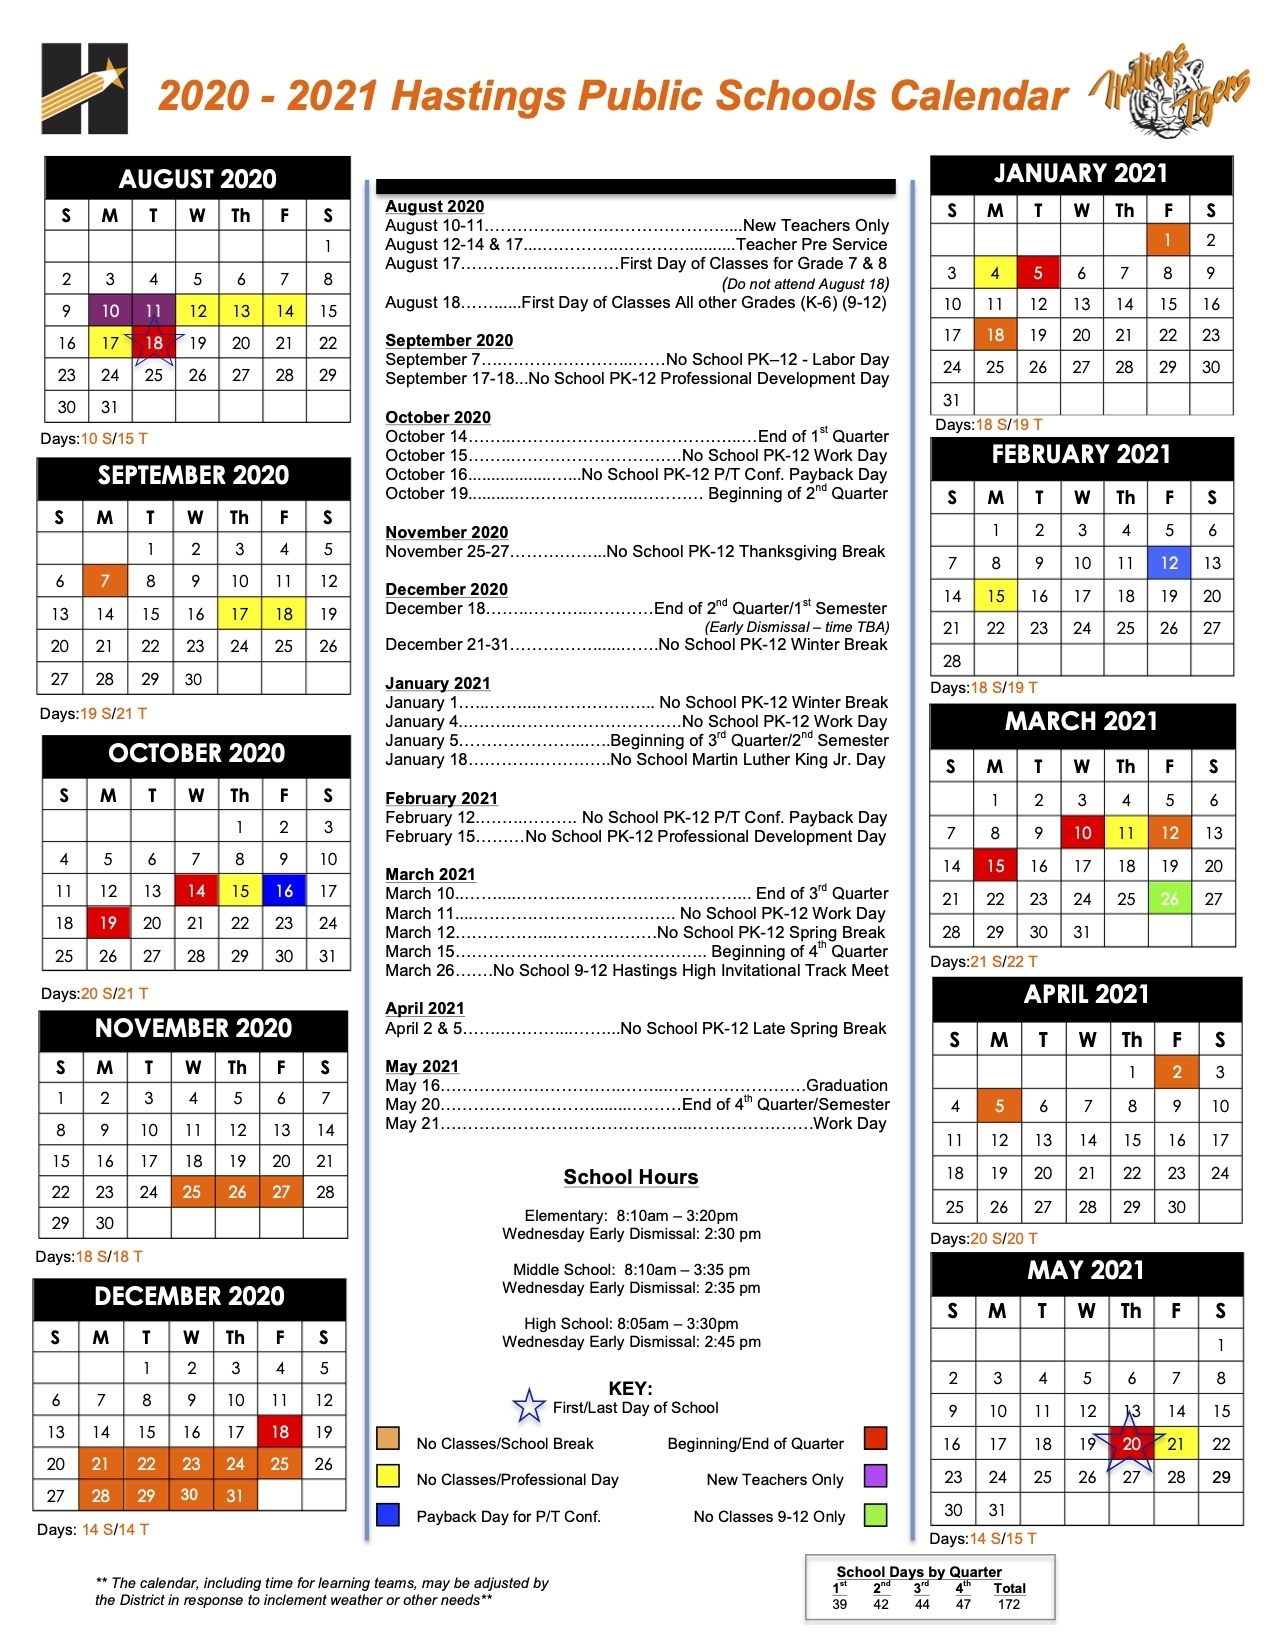 Days Of Attendance Calendar - Hastings Public Schools